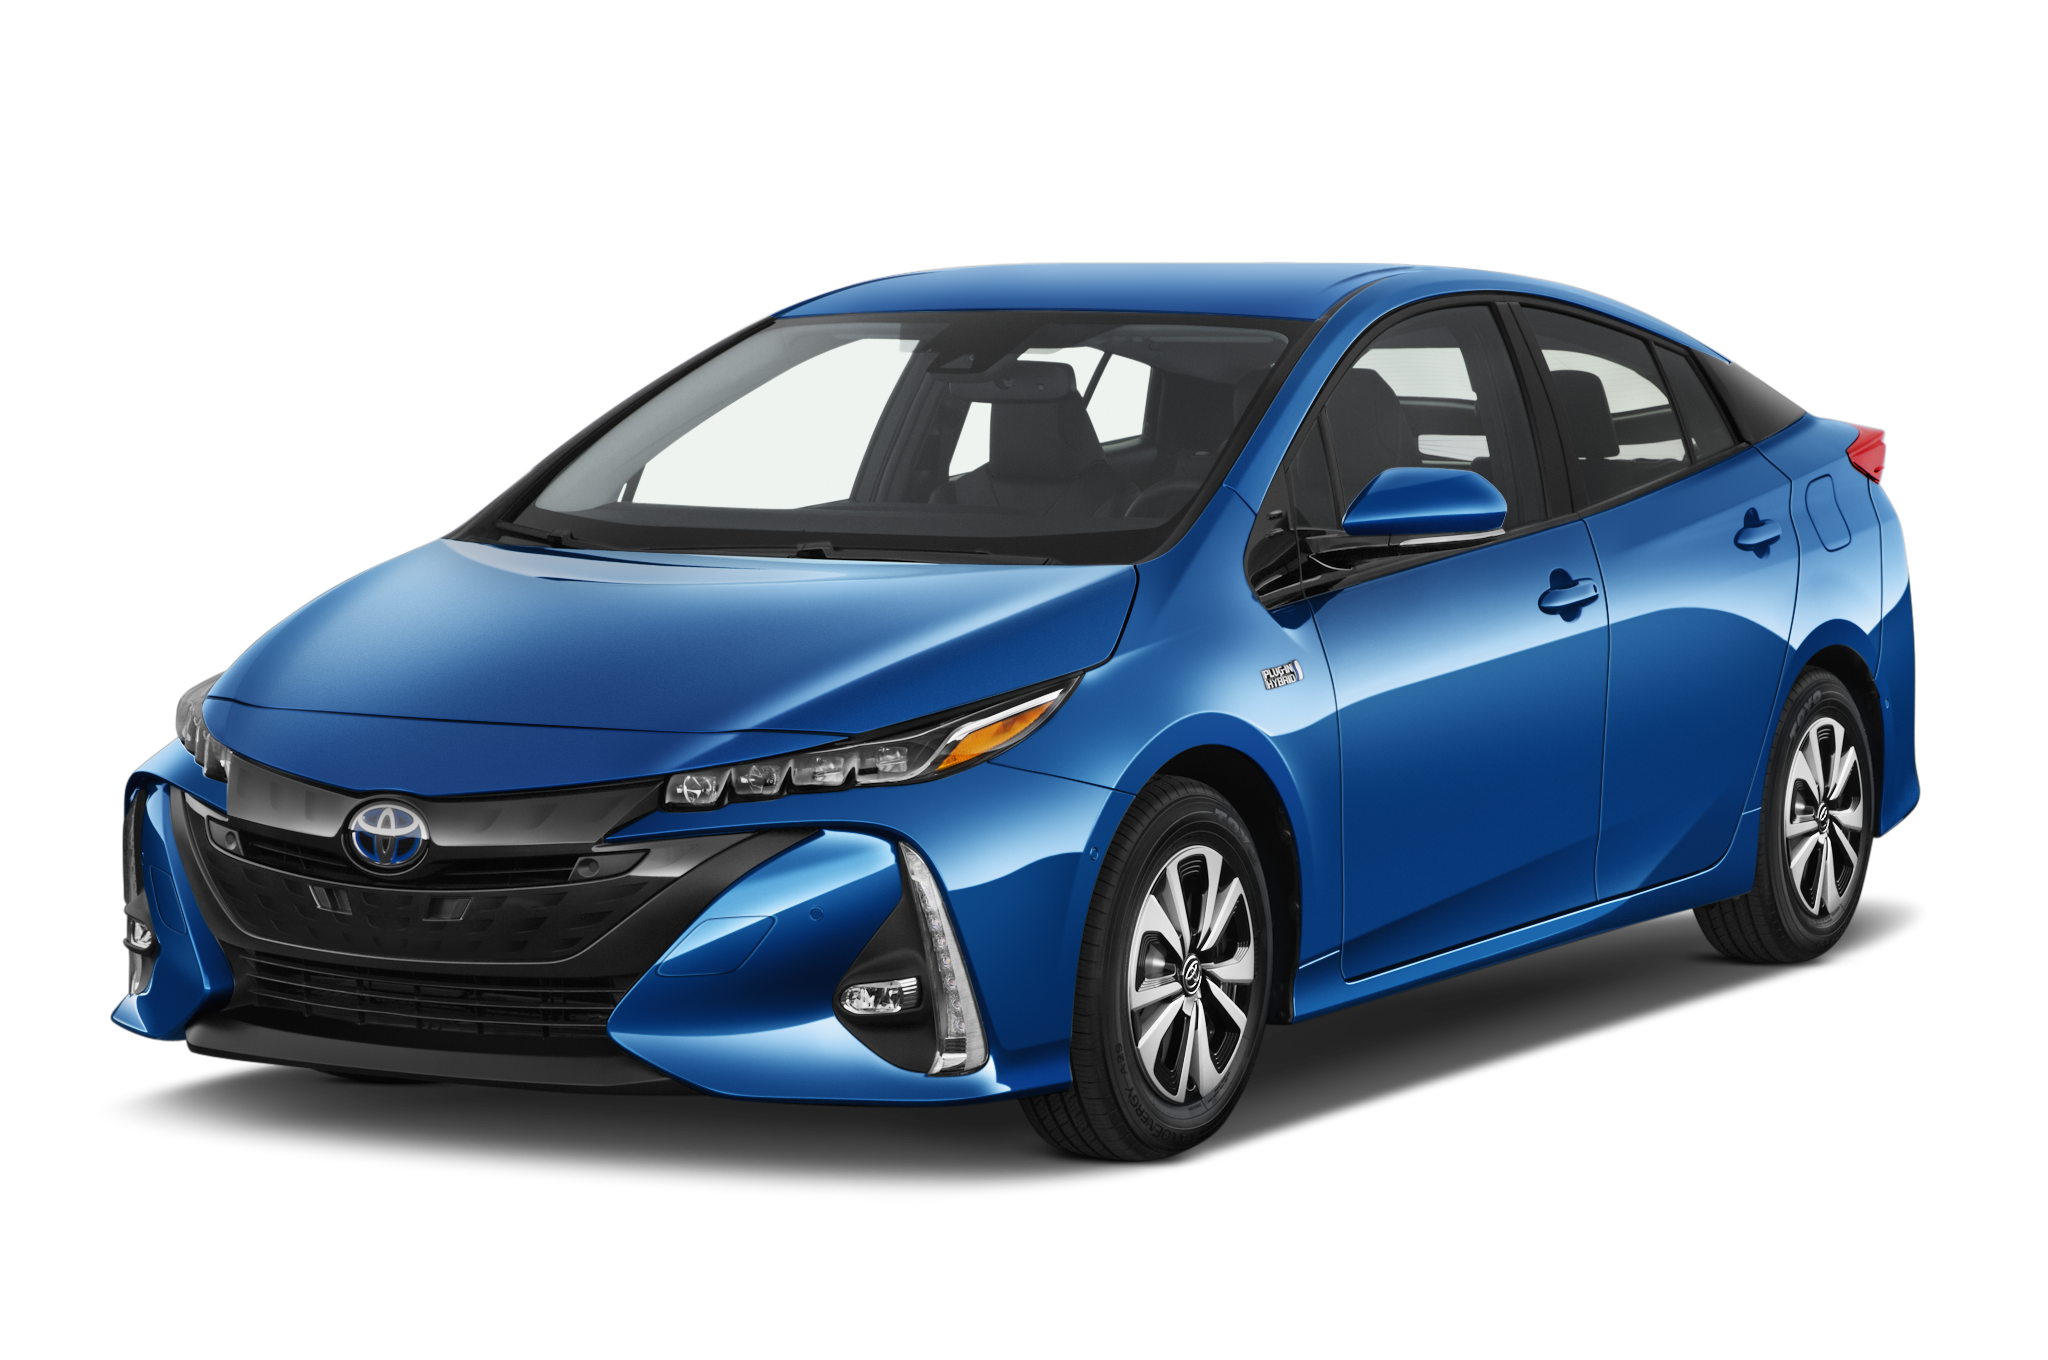 5 Things To Know About The 2017 Toyota Prius Prime Plug In